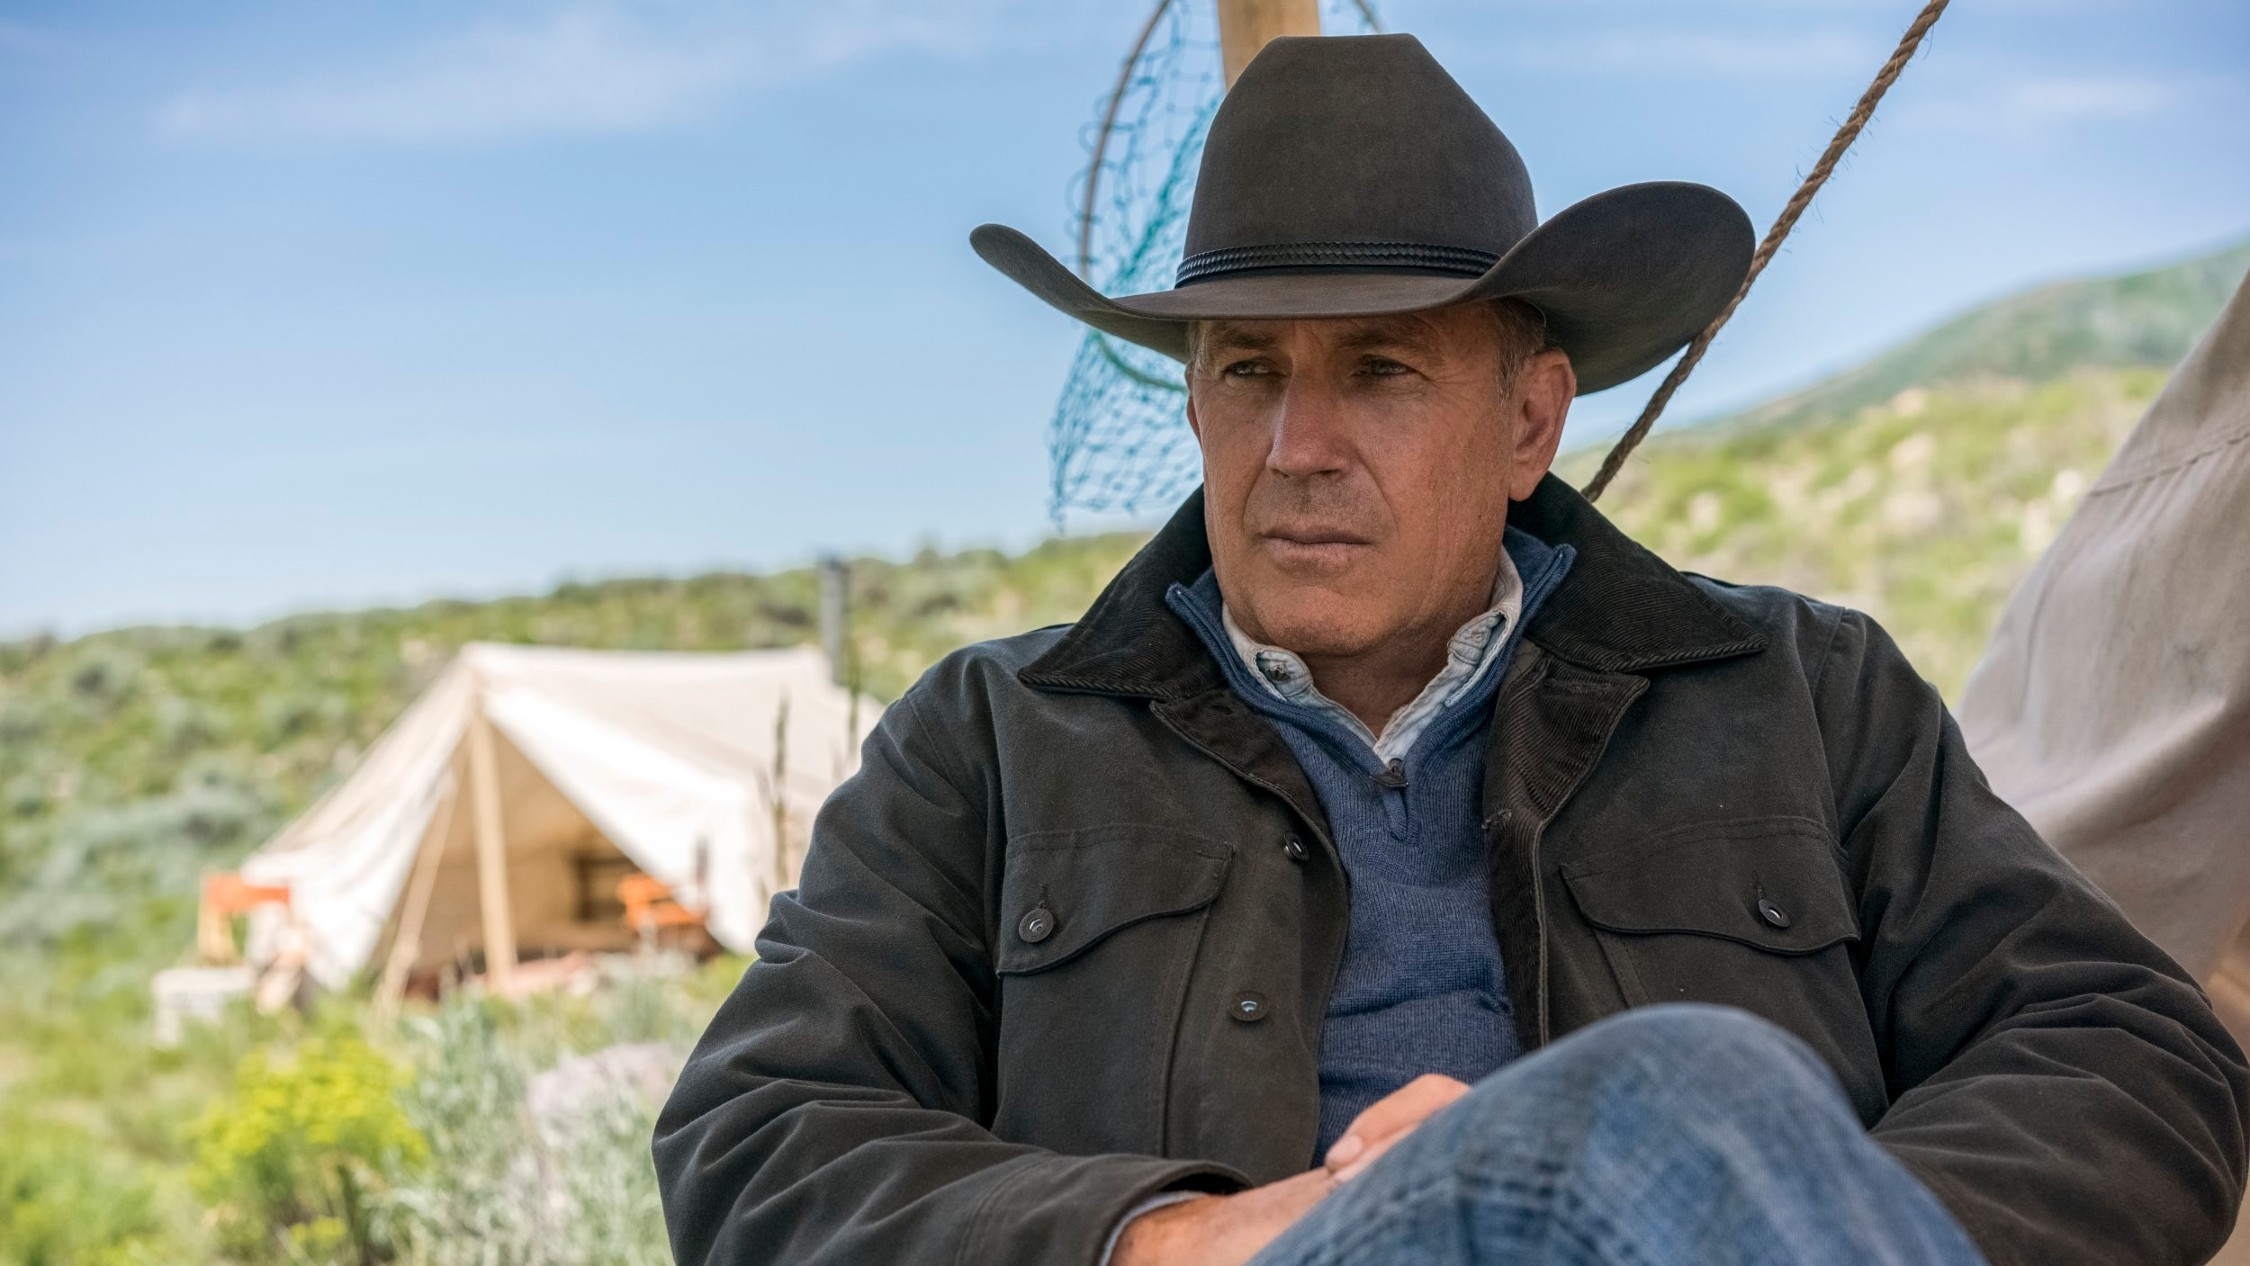 the bodyguard is back as Costner goes all ranch patriarch in Yellowstone